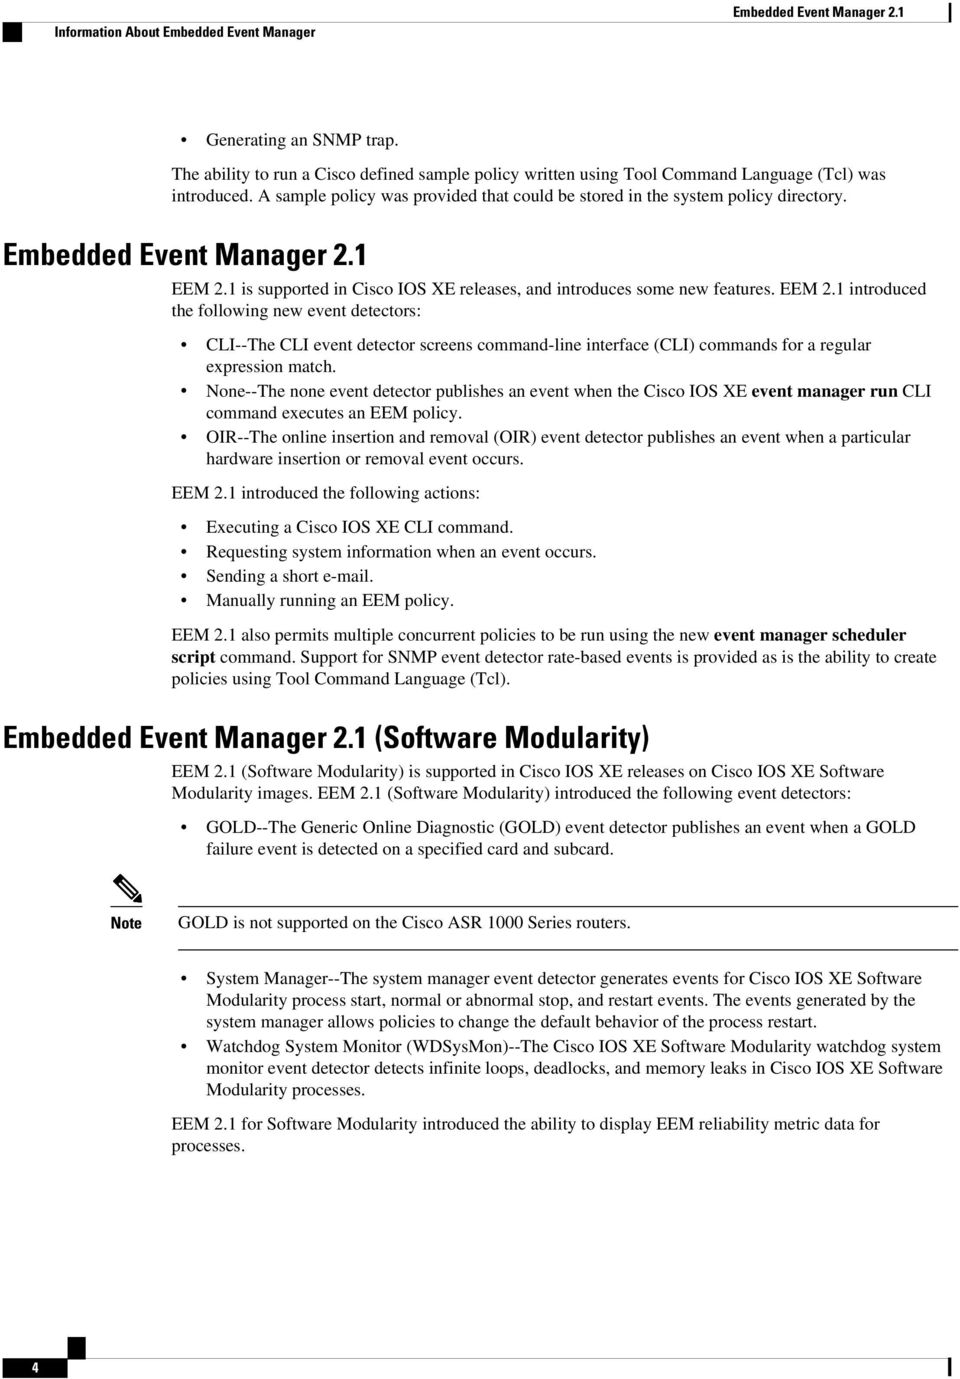 Embedded Event Manager Overview - PDF